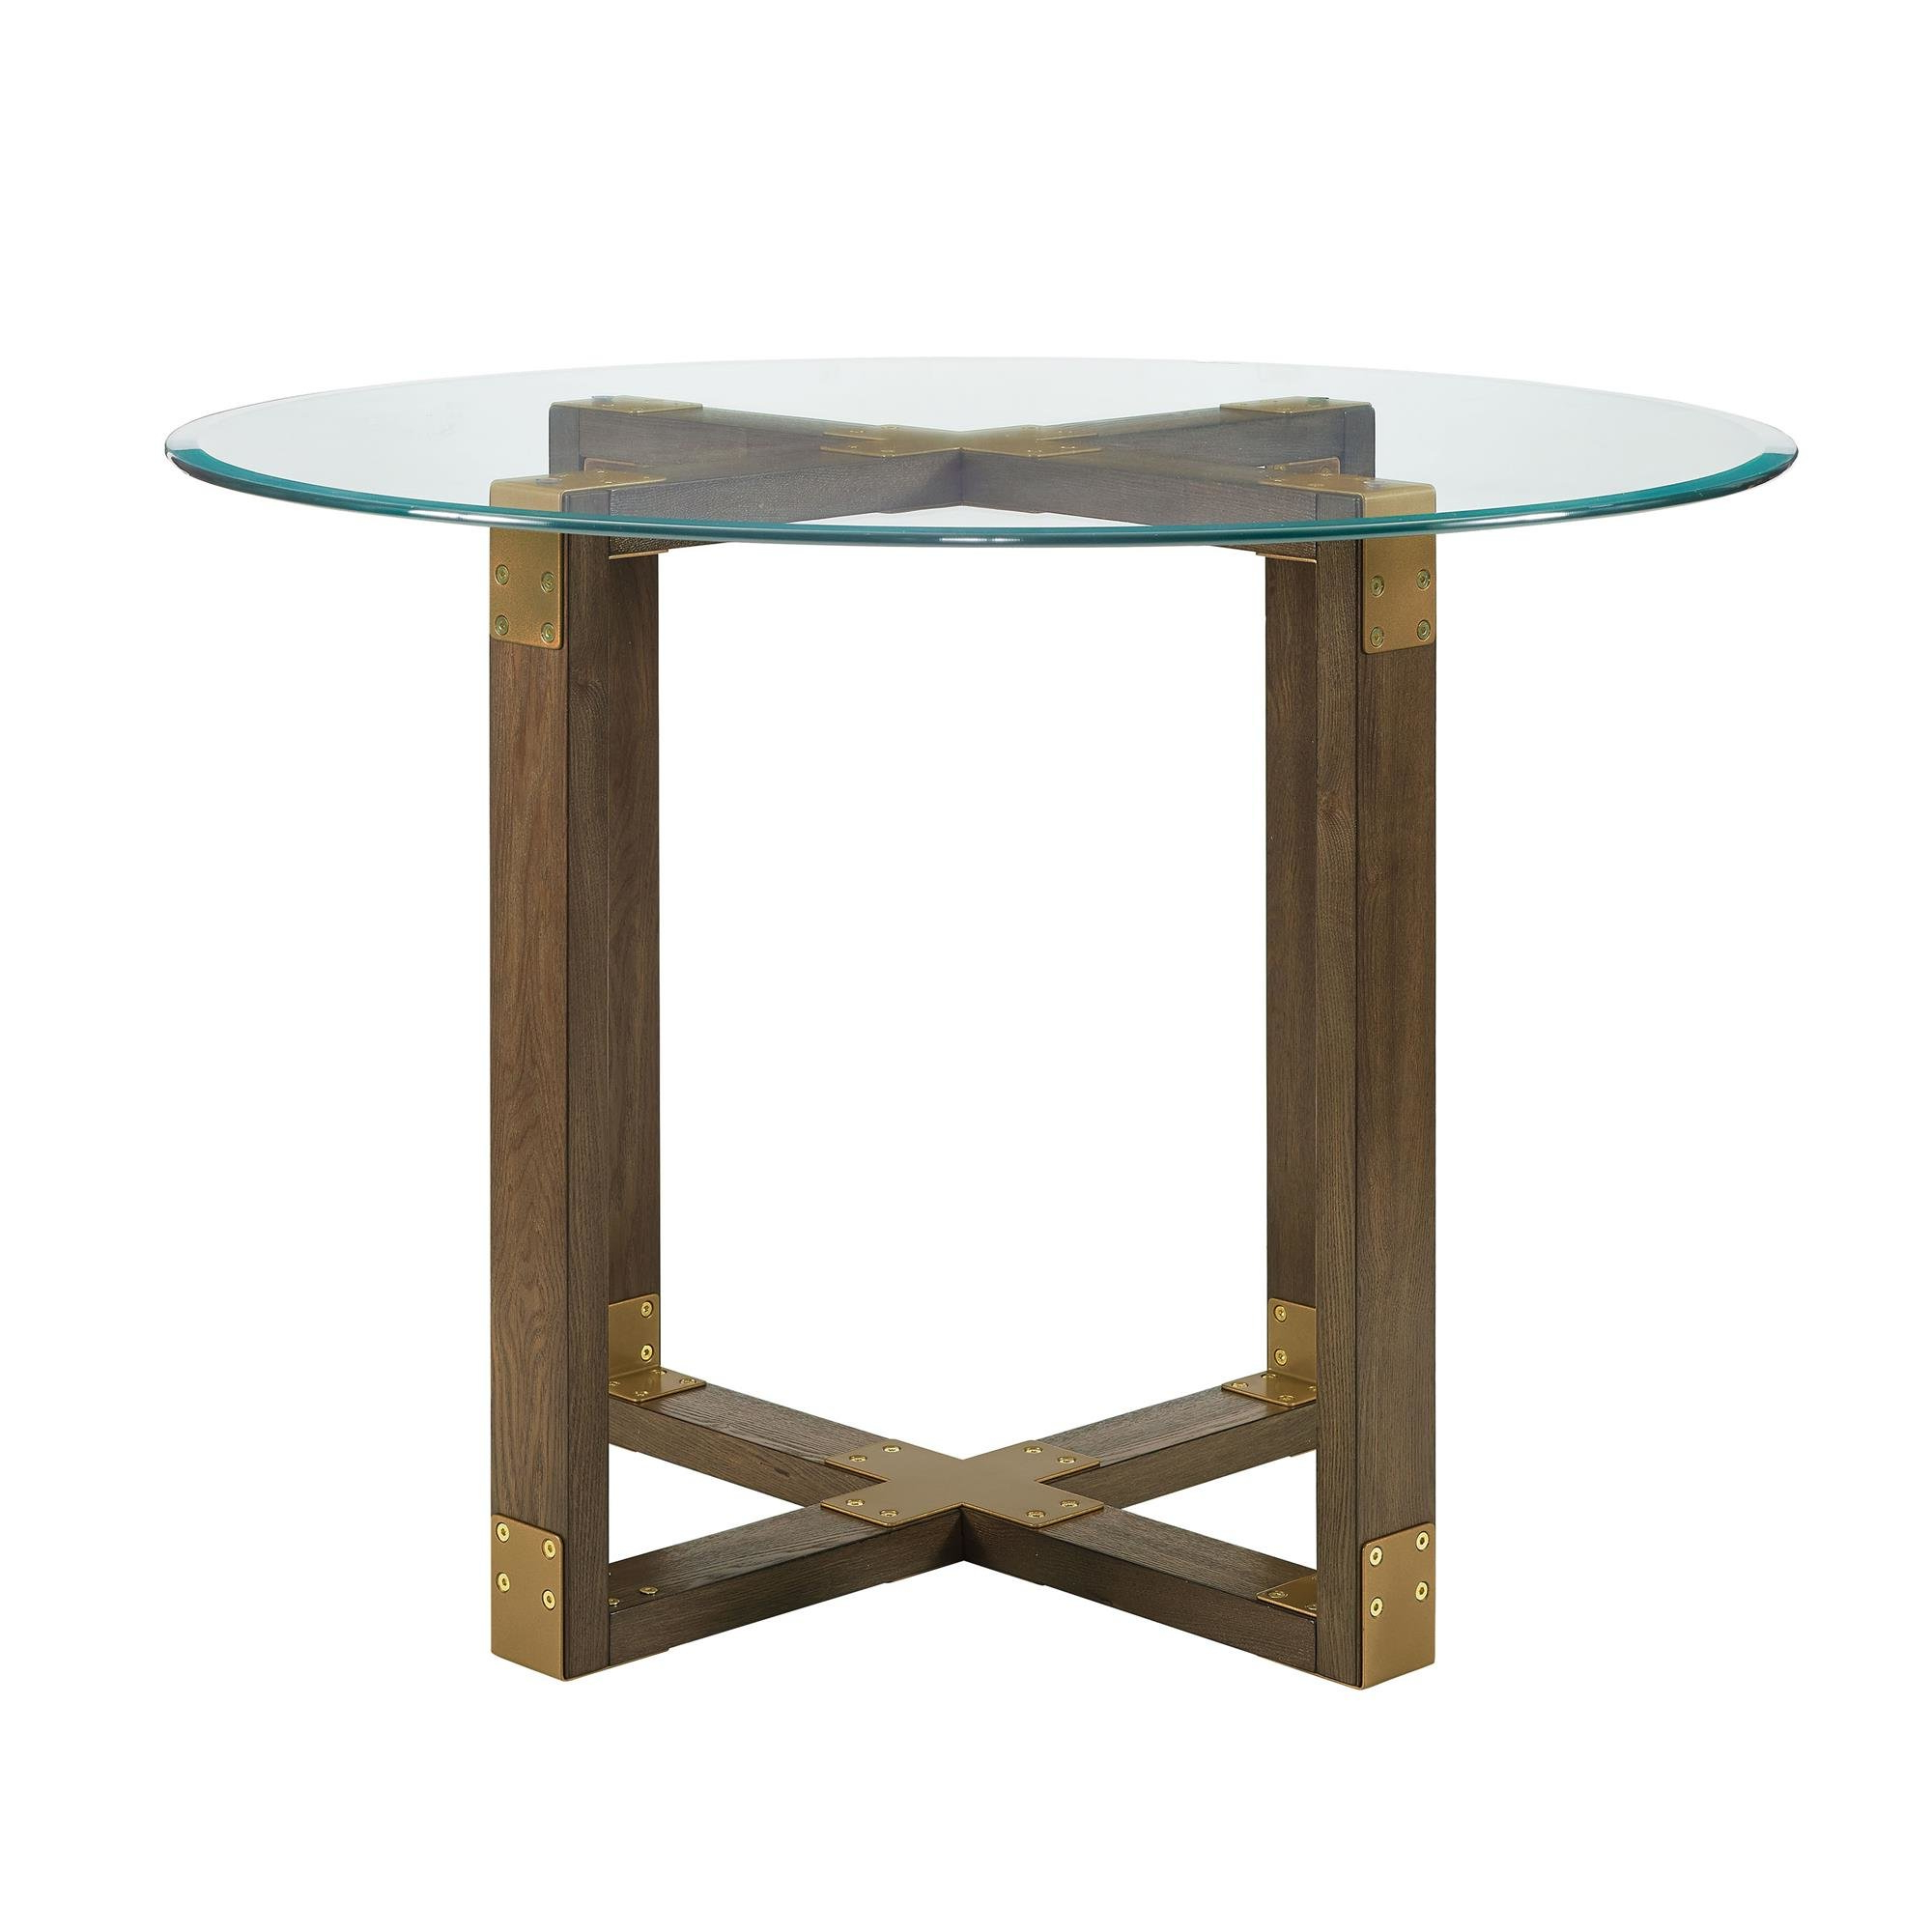 Shabby Chic Dining Table You'll Love In (View 20 of 20)